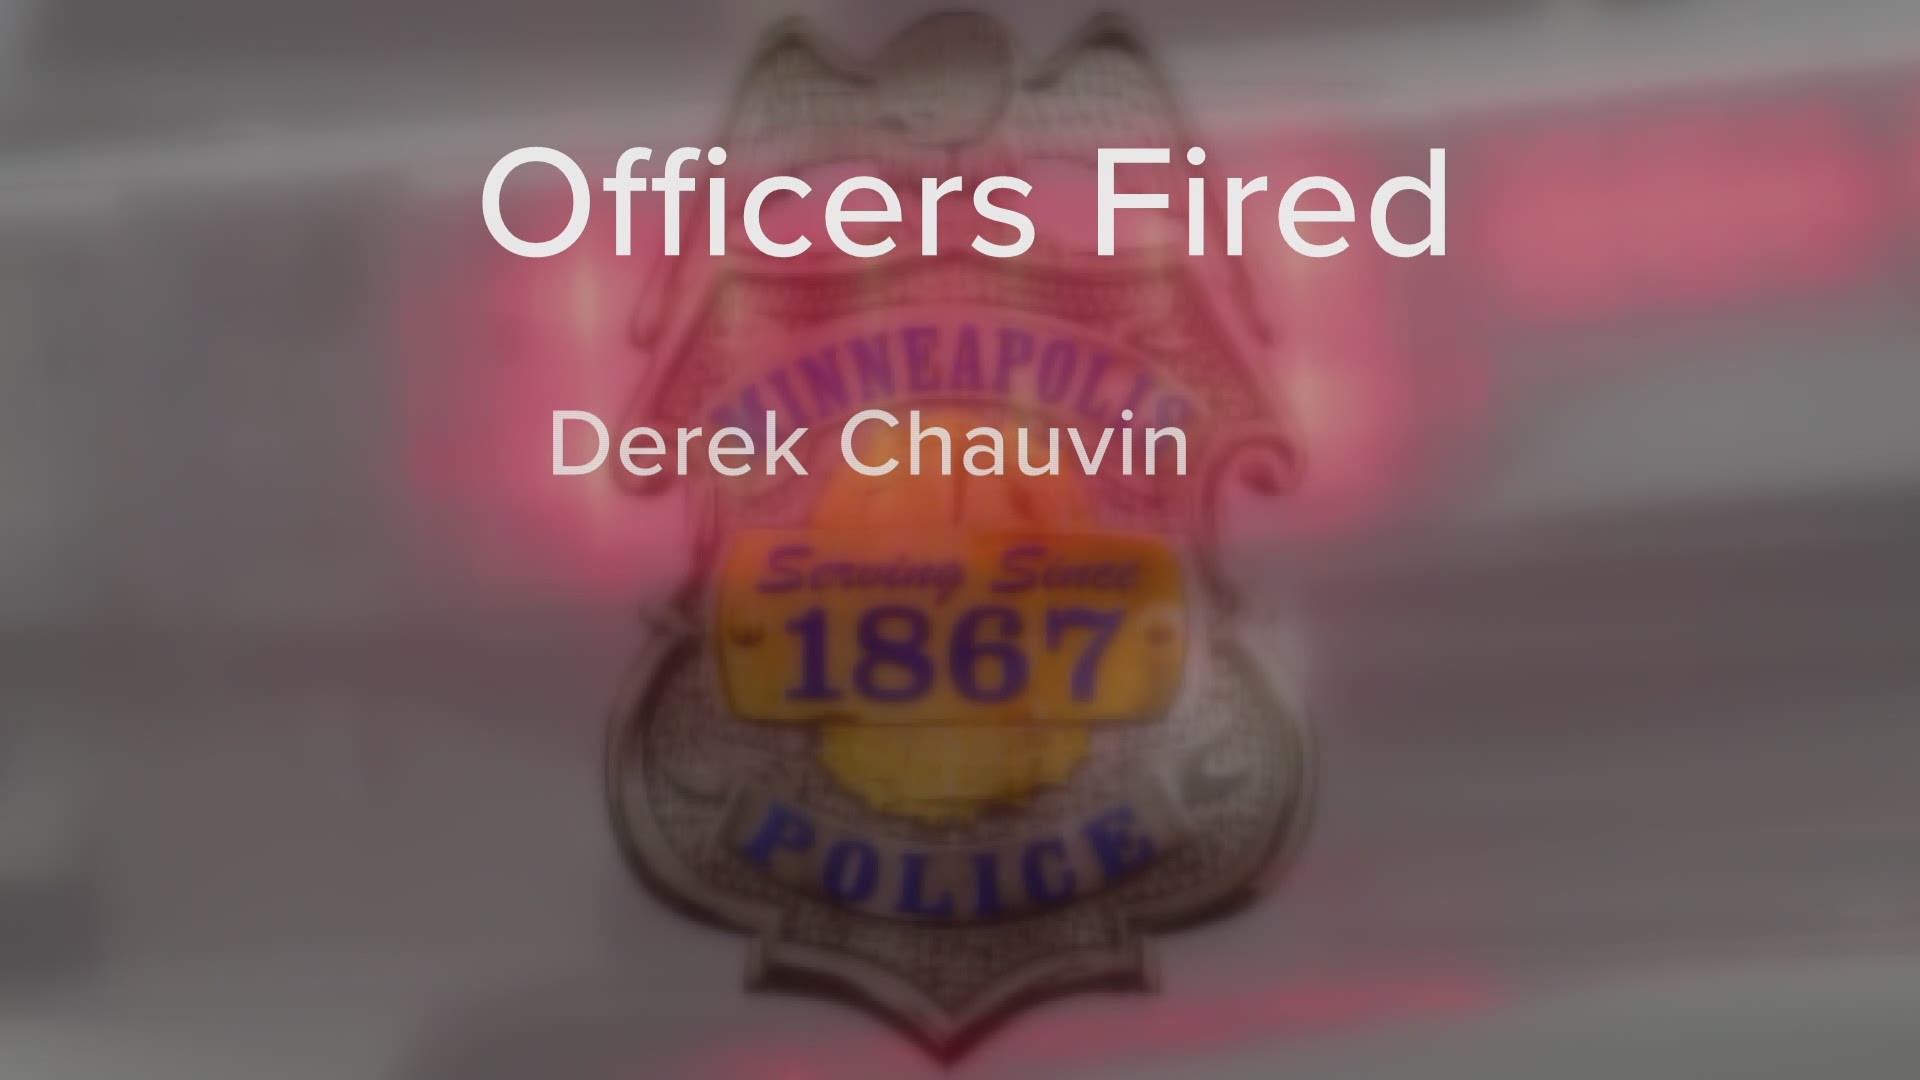 Derek Chauvin Fired On 2 People During Police Career Wusa9 Com